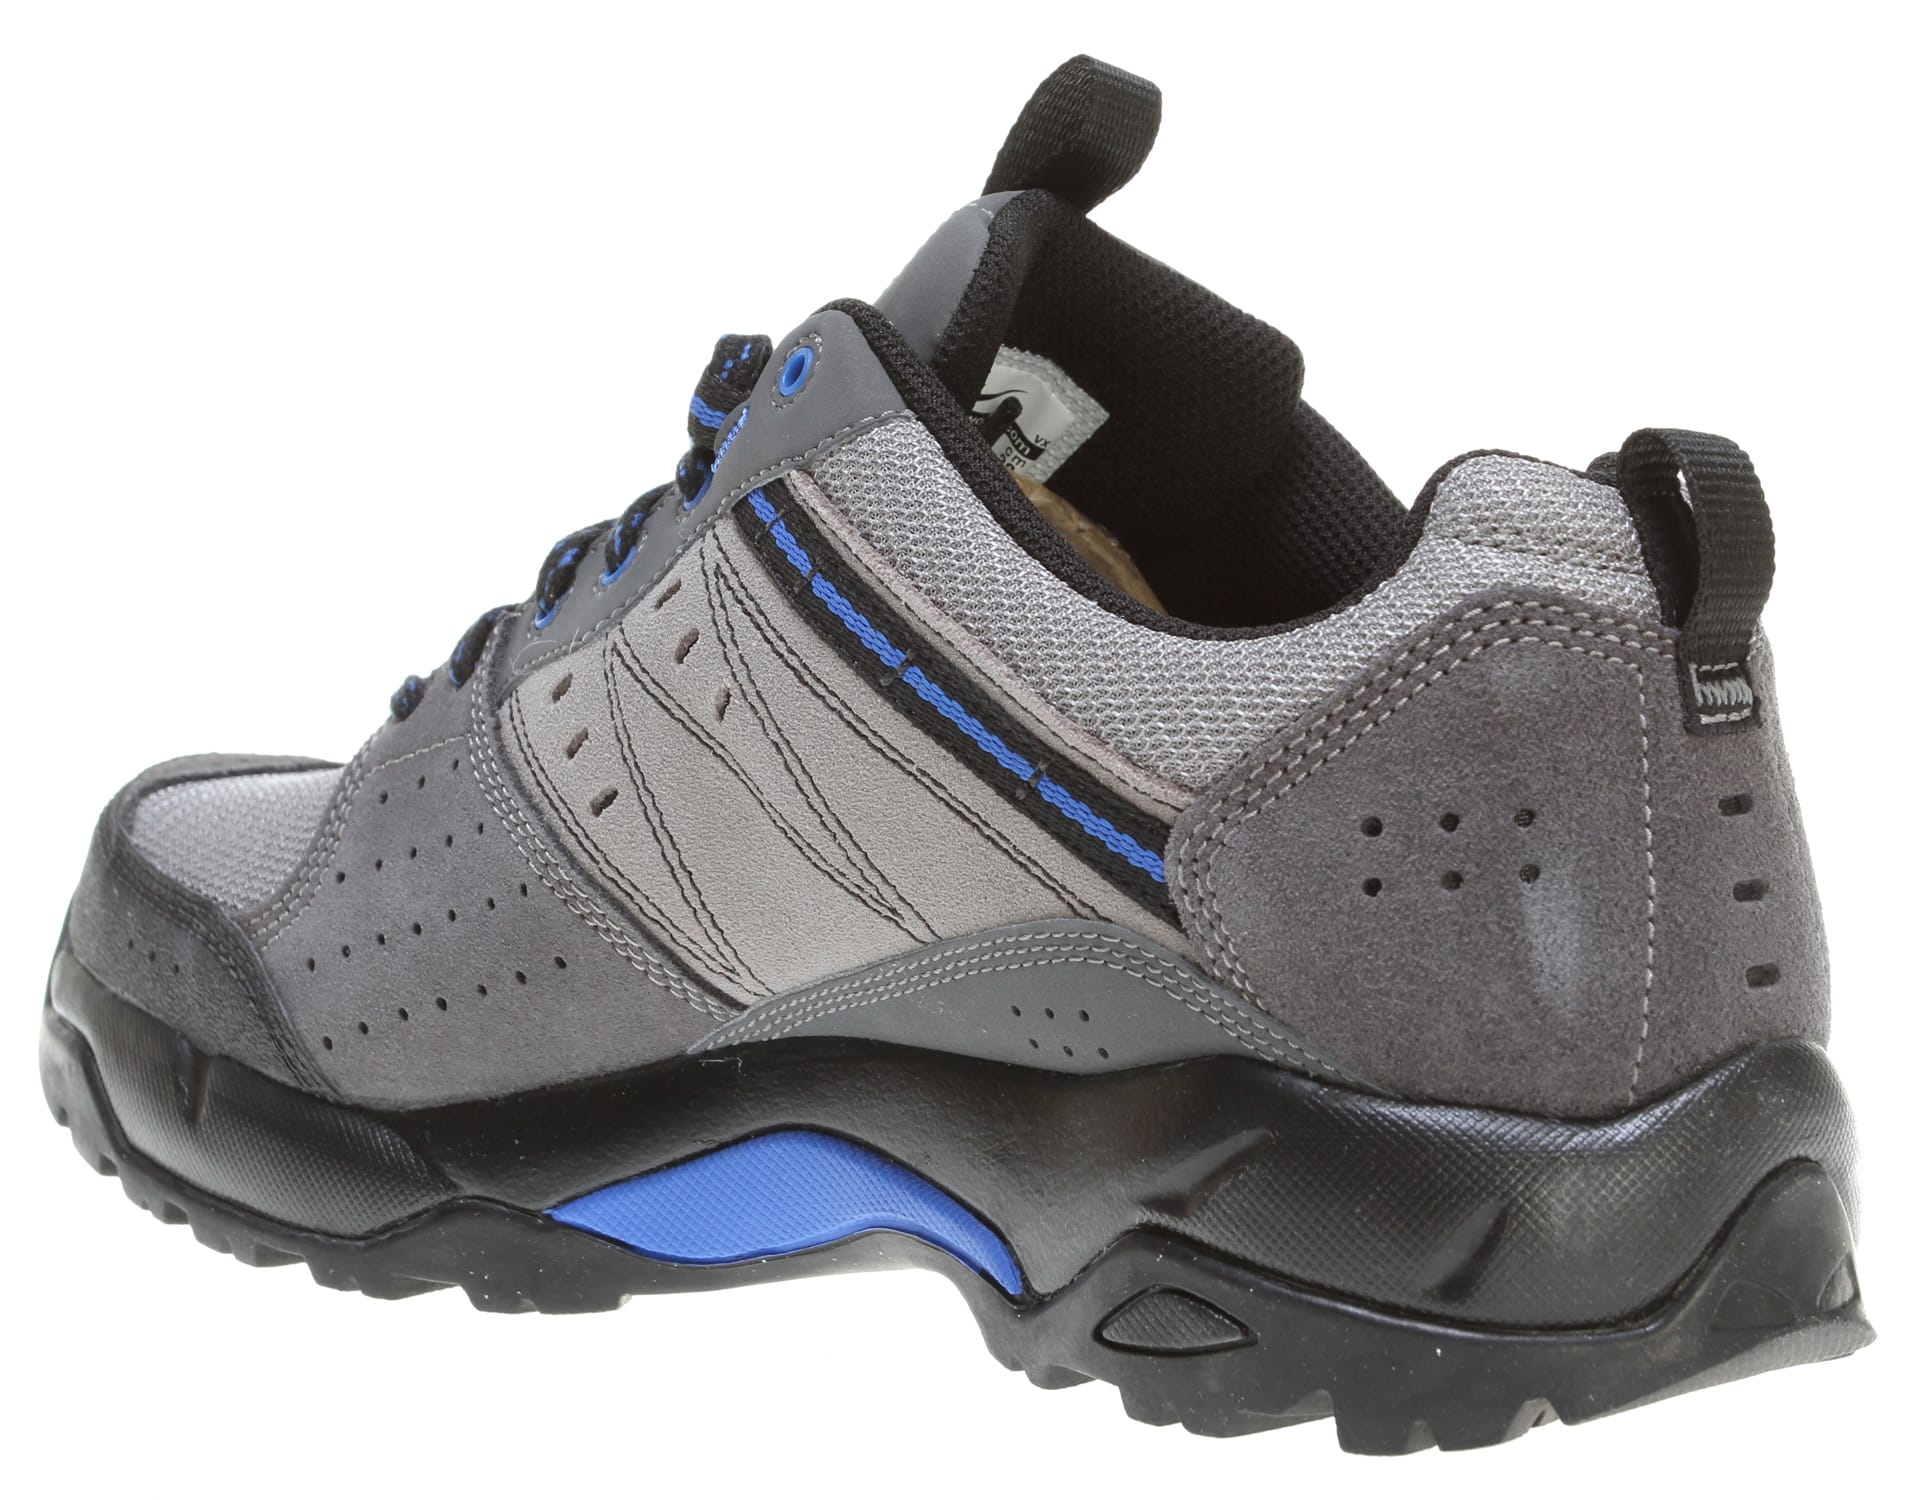 db8688443 Nike Salbolier Hiking Shoes - thumbnail 3